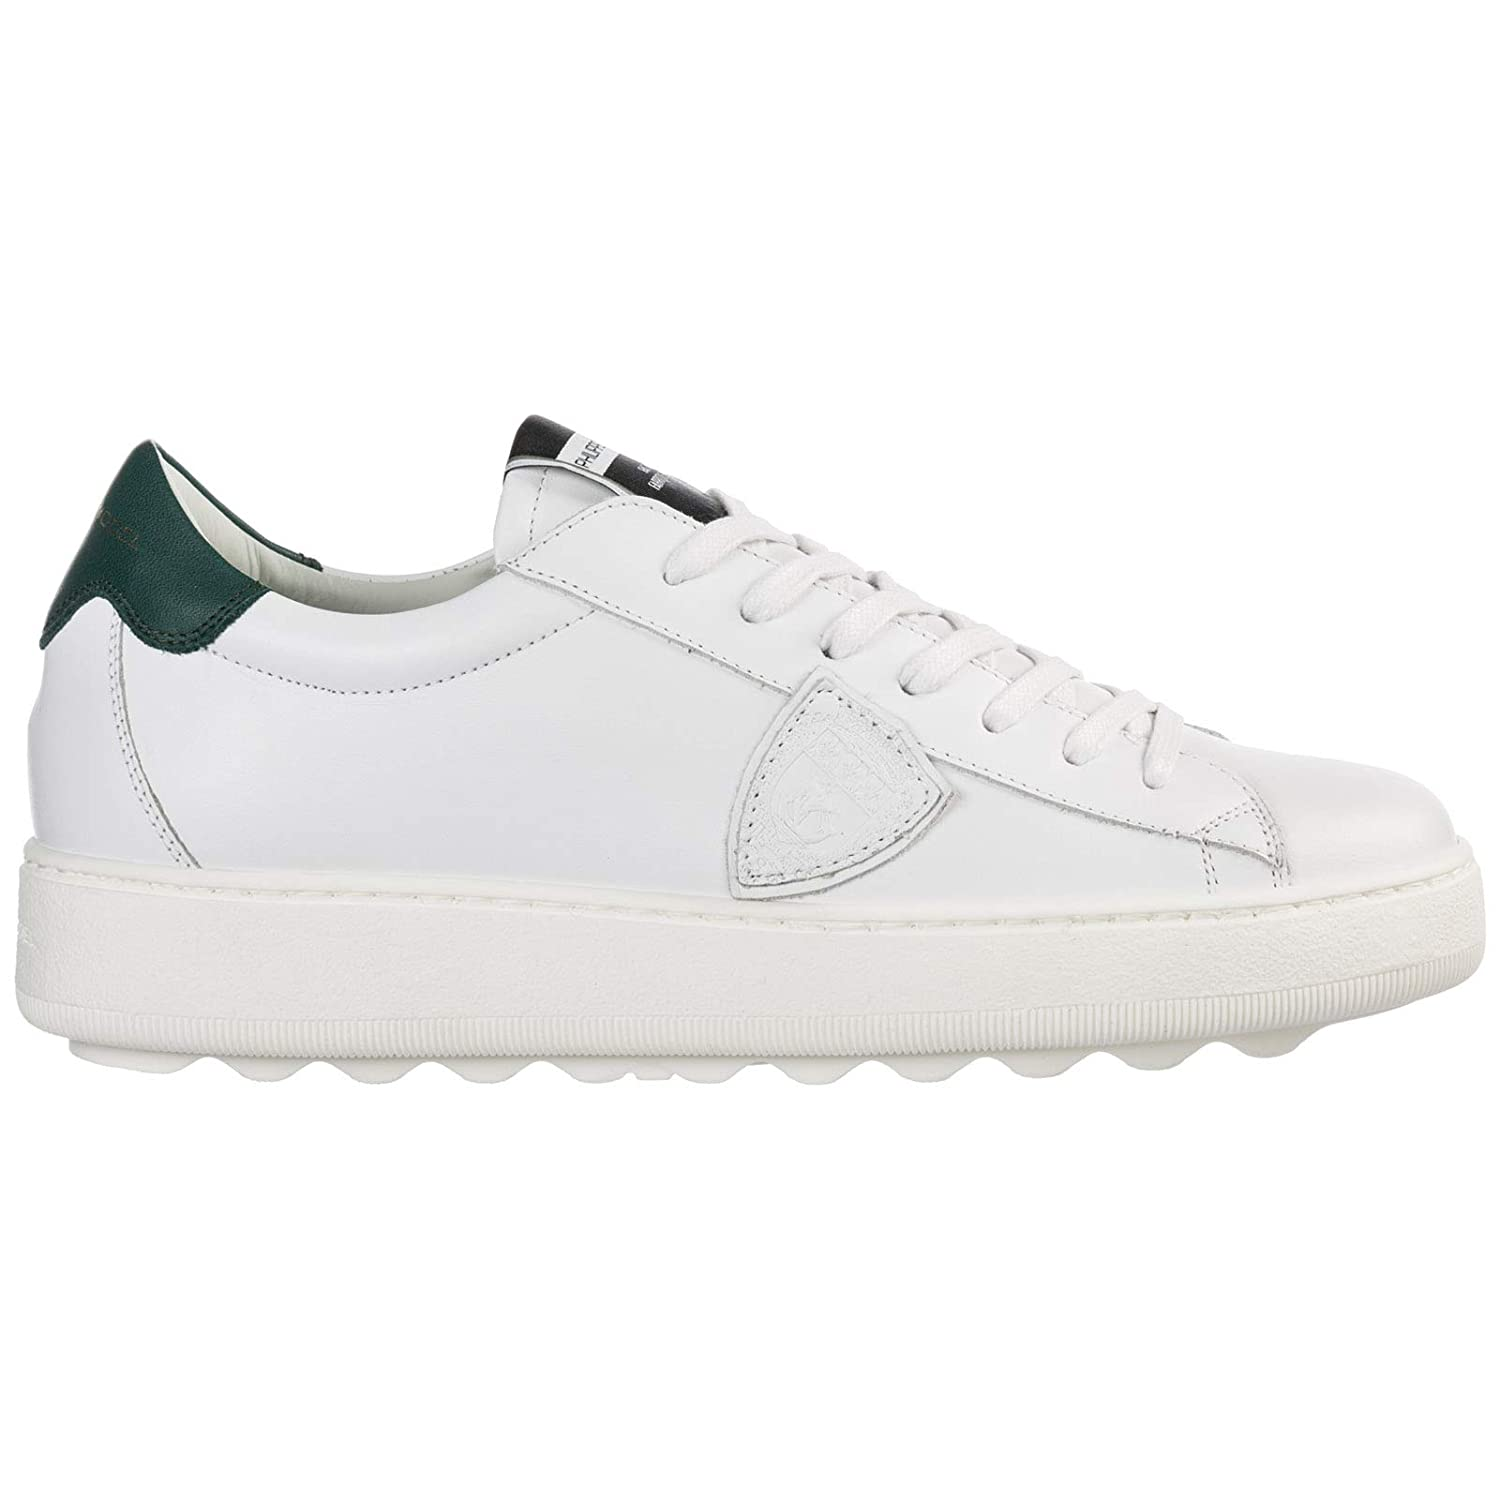 Bianco PHILIPPE MODEL Men Madeleine Sneakers Bianco